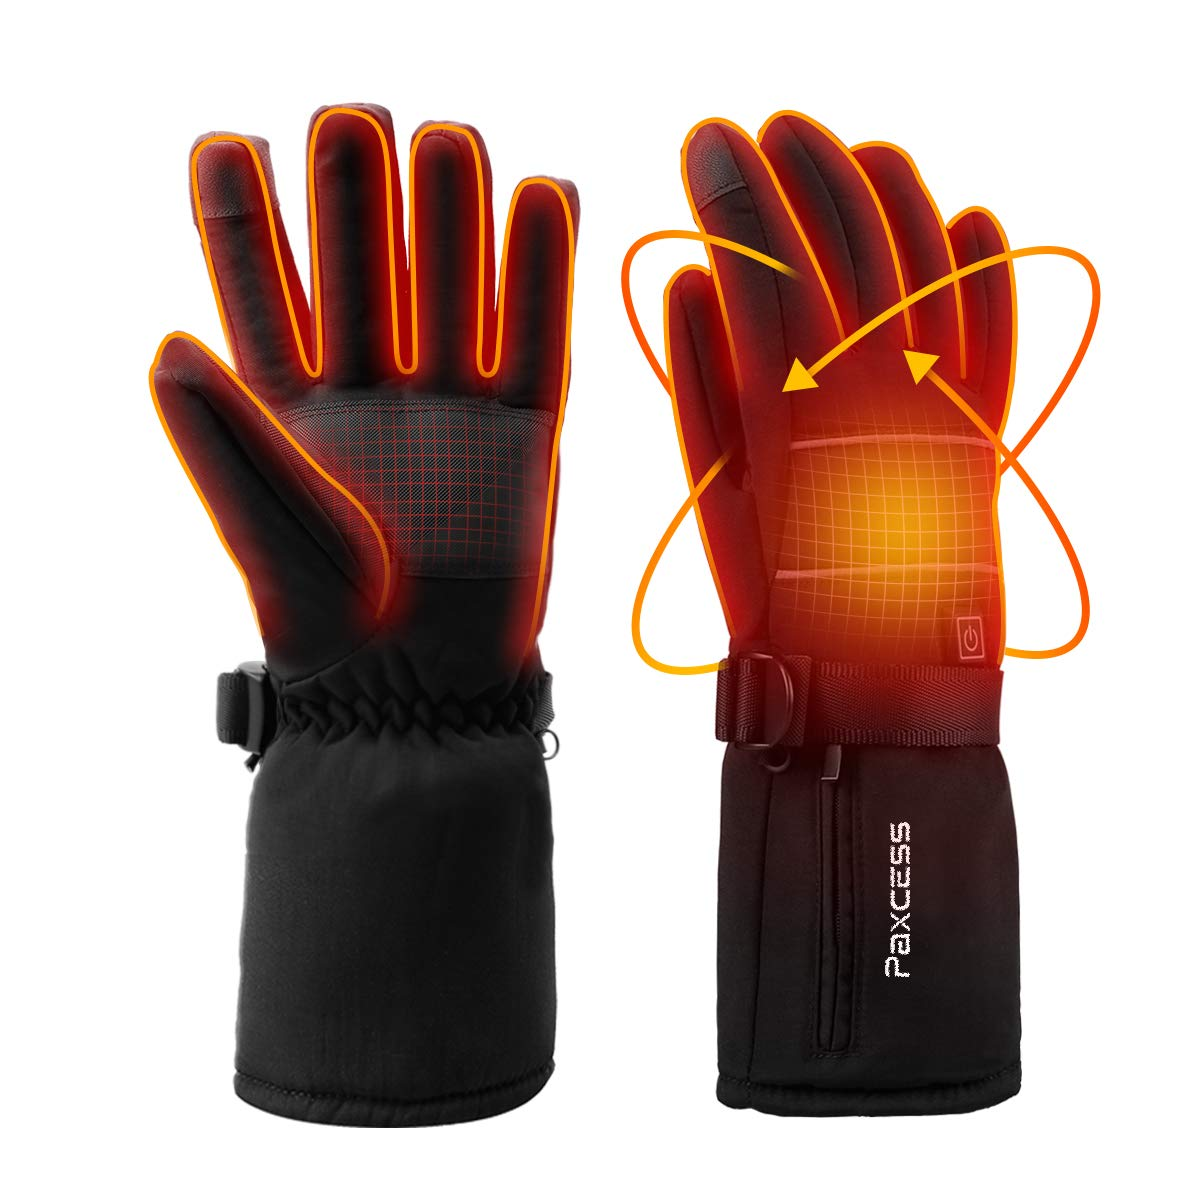 PAXCESS Heated Gloves, Heated Snowboarding Gloves with 4000mAh Rechargeable Li-ion Battery for Men and Women, Battery Heated Gloves Work up to 2.5-6.8 Hrs for Cycling Motorcycle Hiking Skiing,XL by PAXCESS